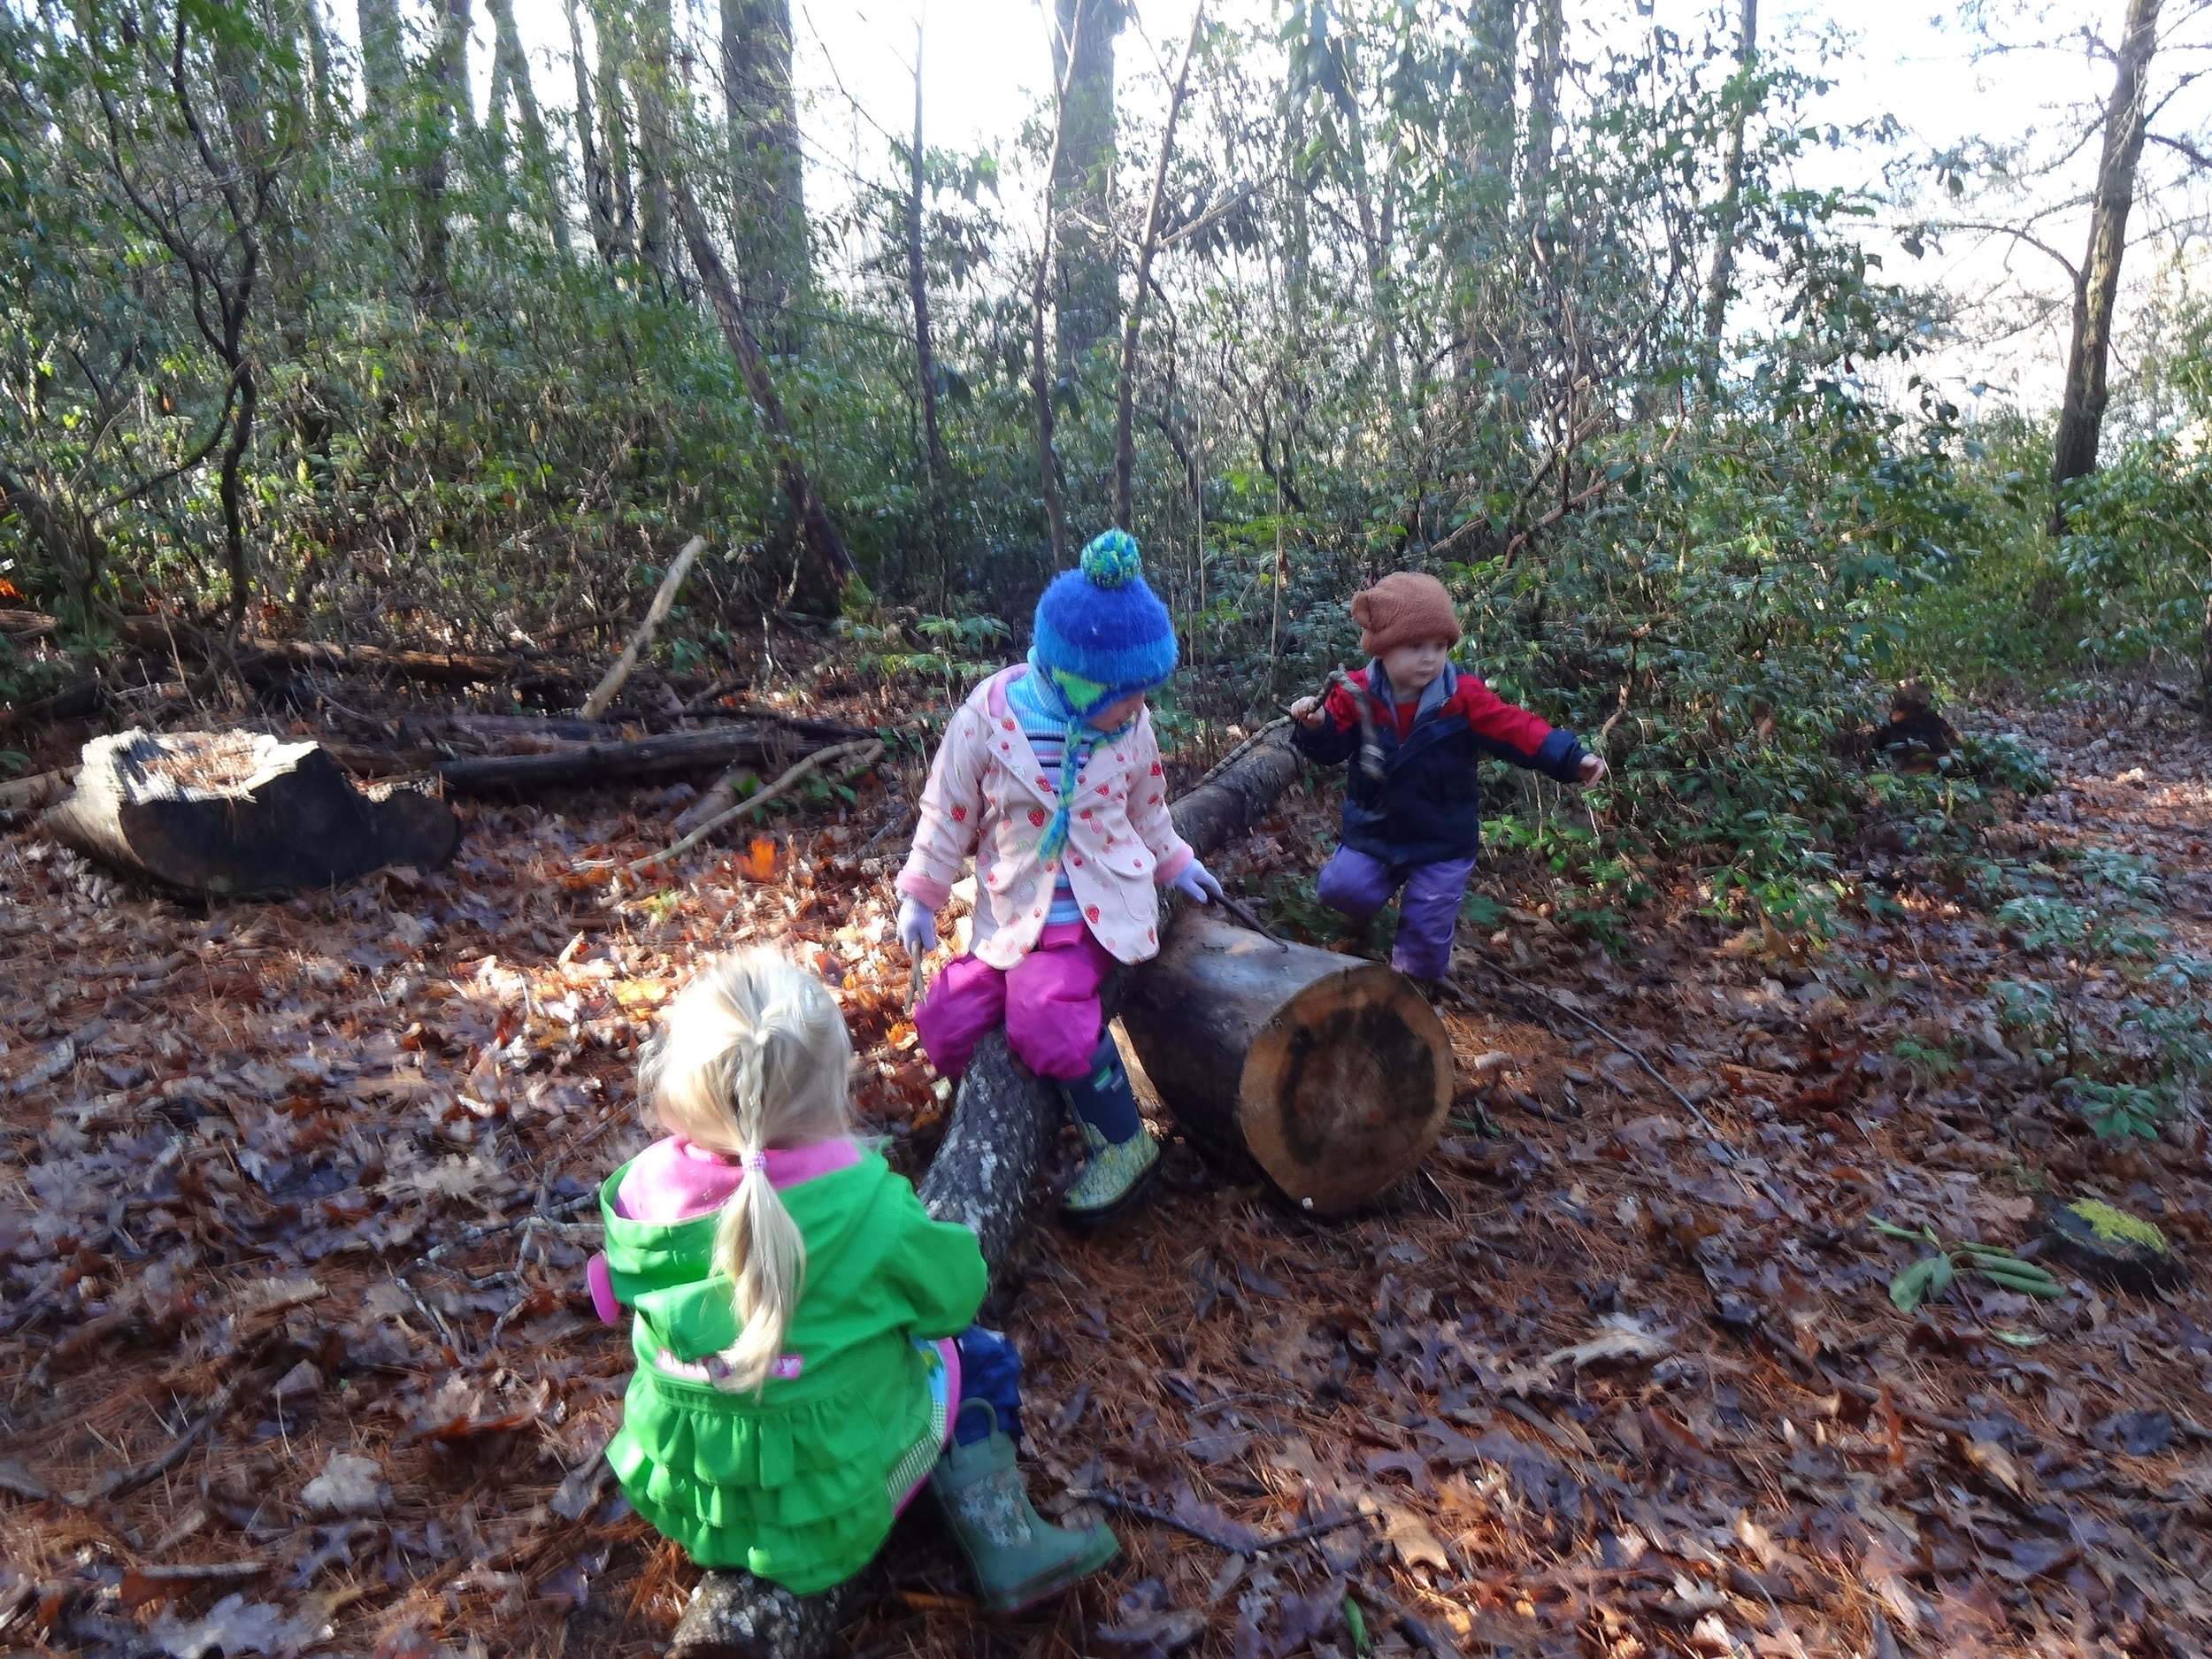 Nature See-Saw is another popular spot on our walk